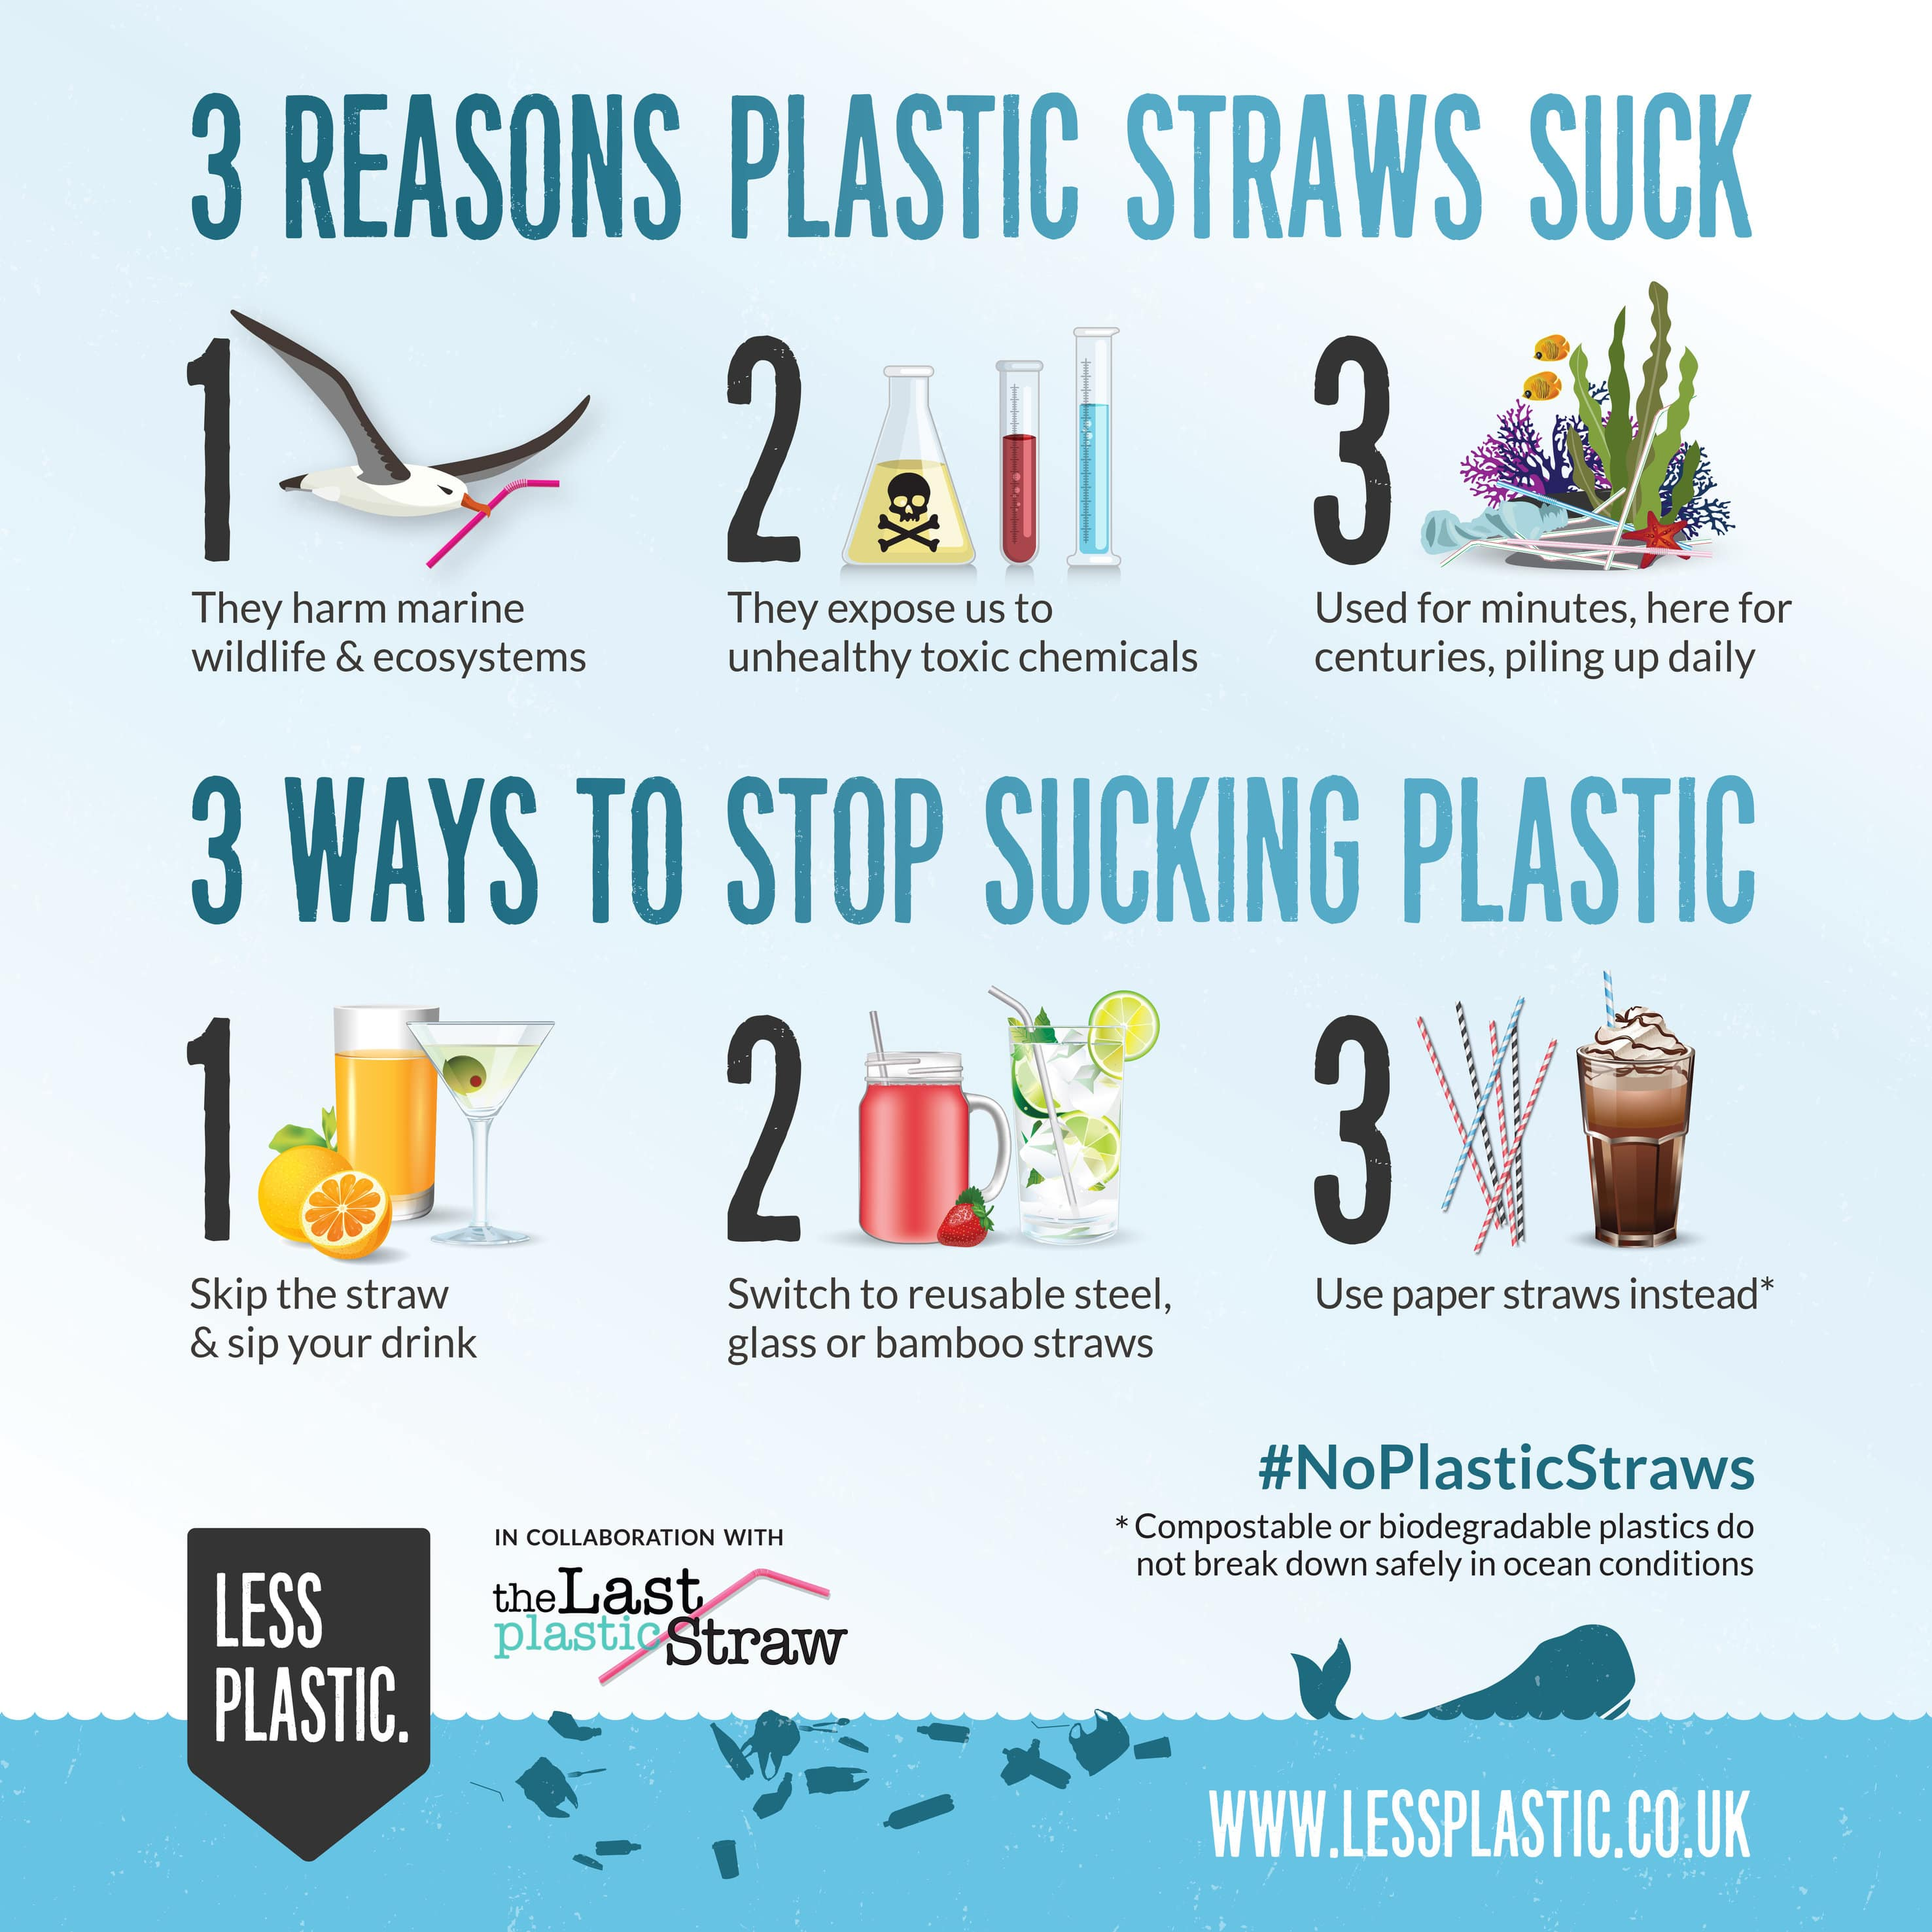 3 Reasons Plastic Straws Suck, 3 ways to Stop Sucking Plastic